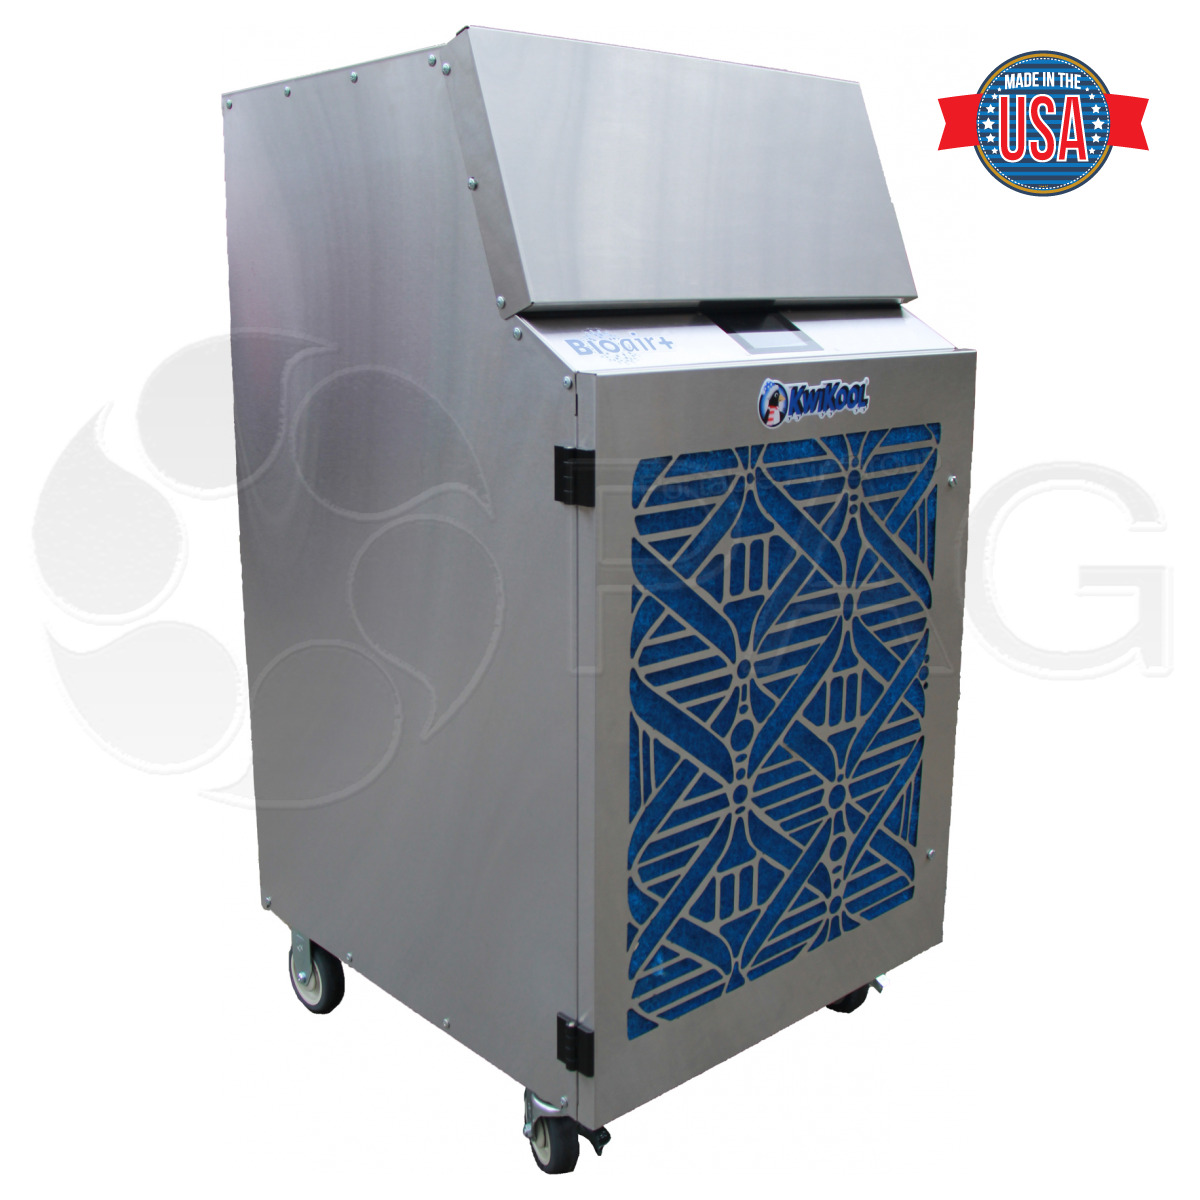 Front-angled picture of the KwiKool® KBP1800 BIOair+© Portable HEPA/UV Air Cleaner, shown with front air grill cover installed